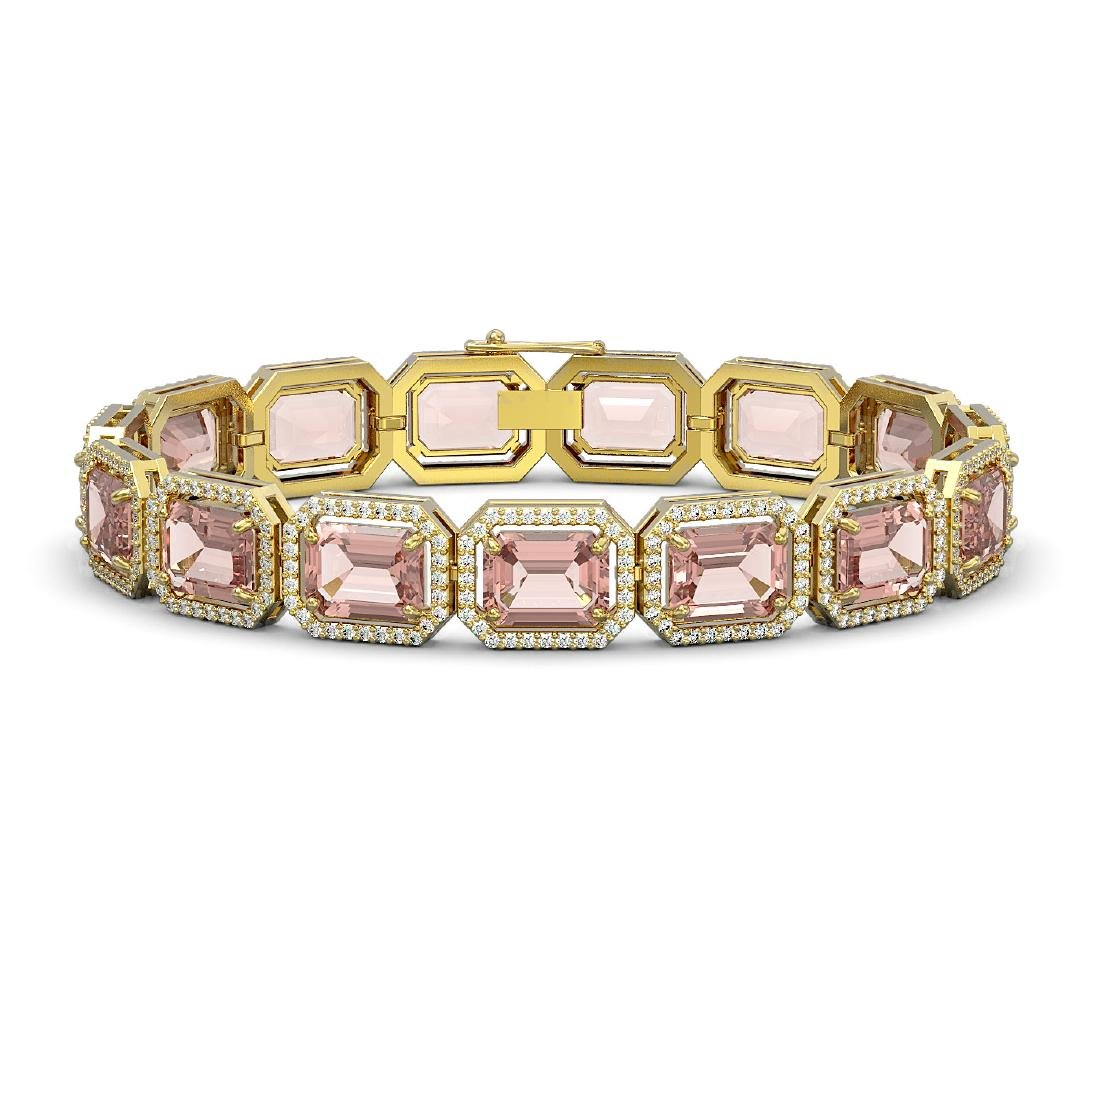 37.11 CTW Morganite & Diamond Halo Bracelet 10K Yellow